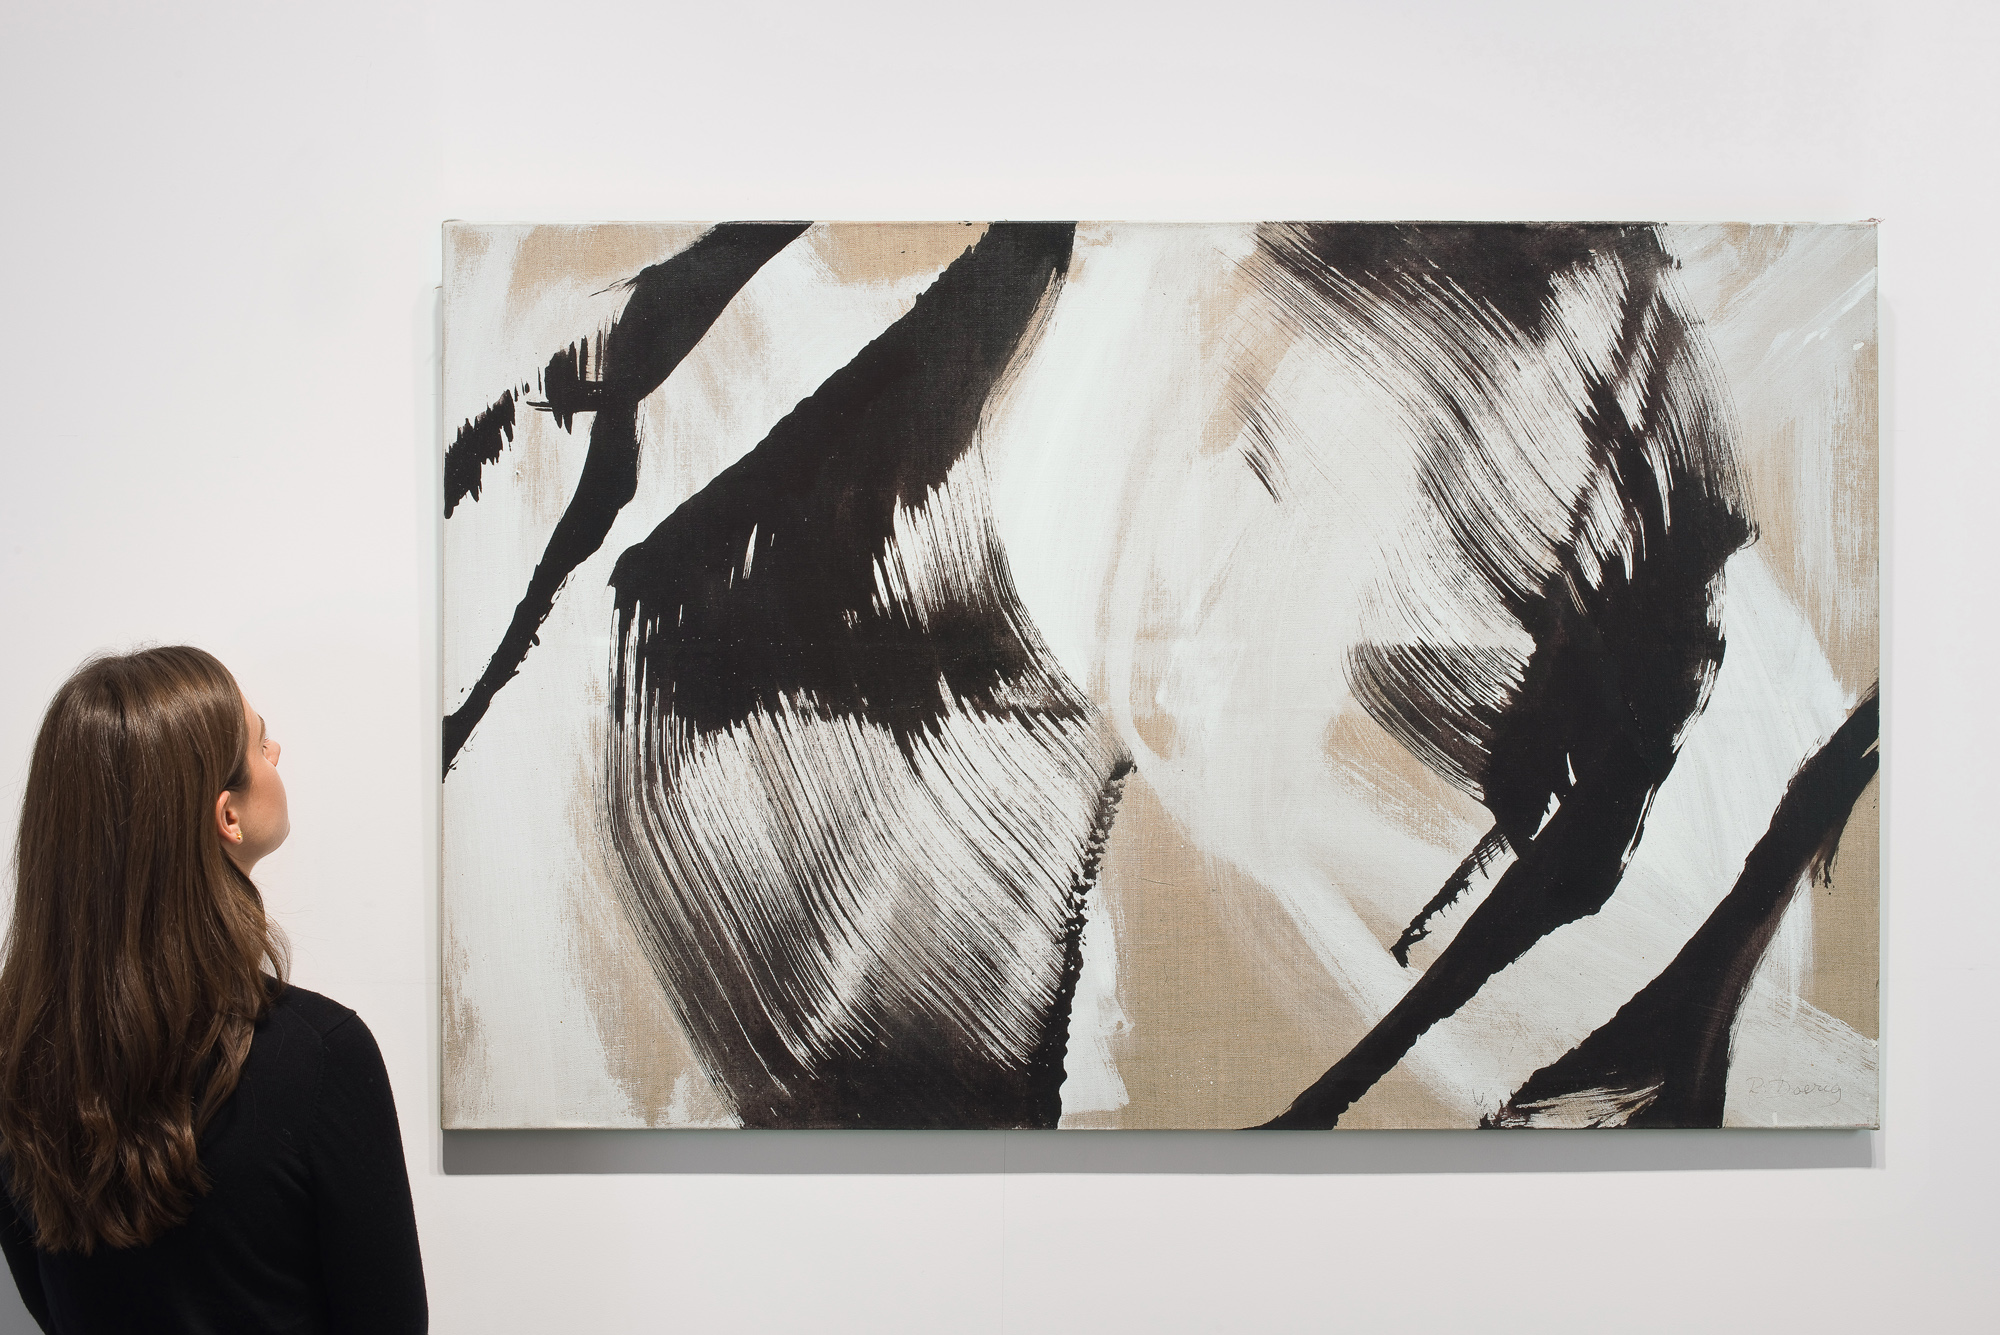 roswitha doerig - gestes blancs noirs painting 2008